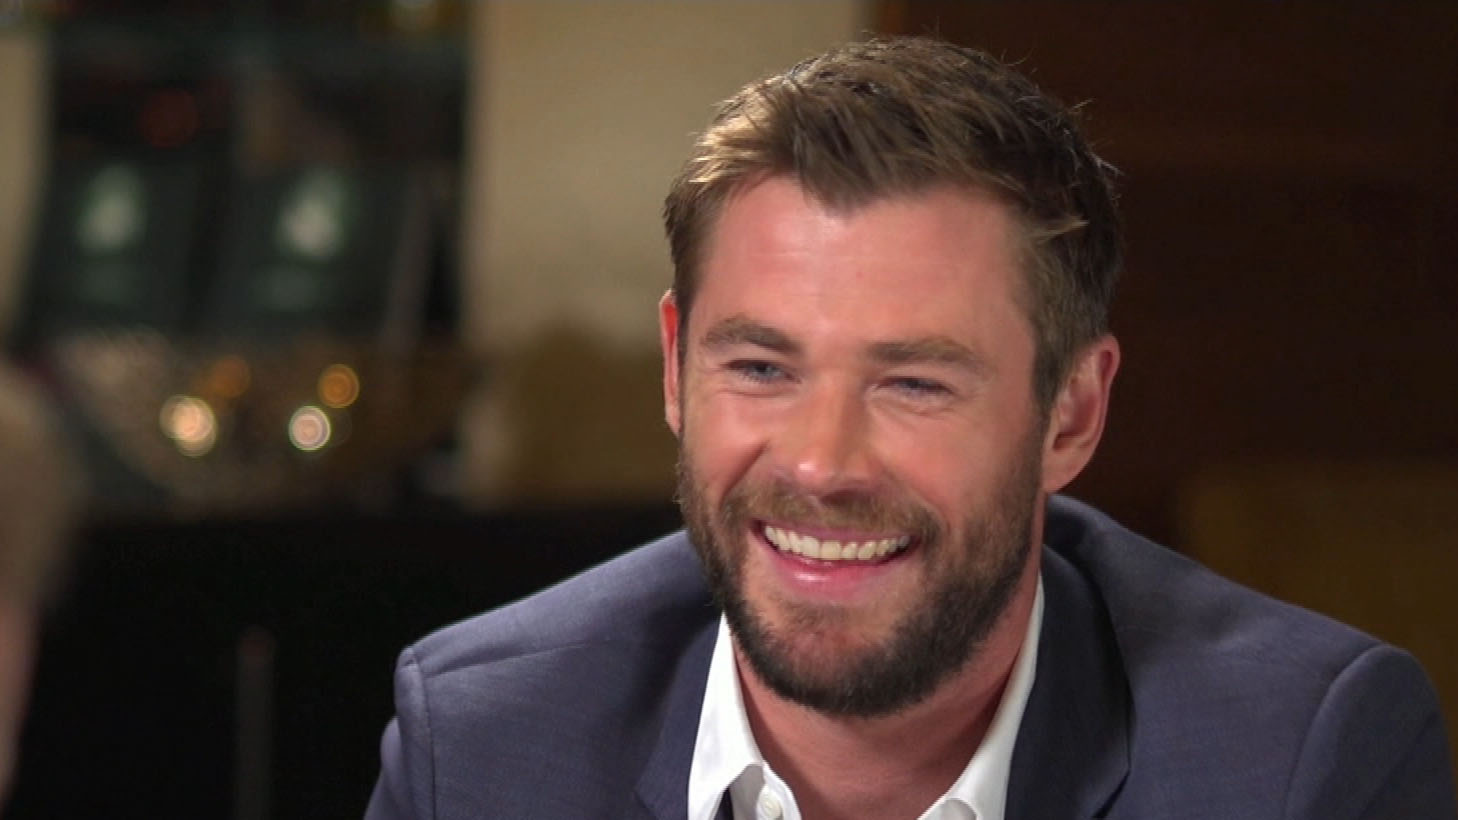 Preview: Karl sits down with Chris Hemsworth